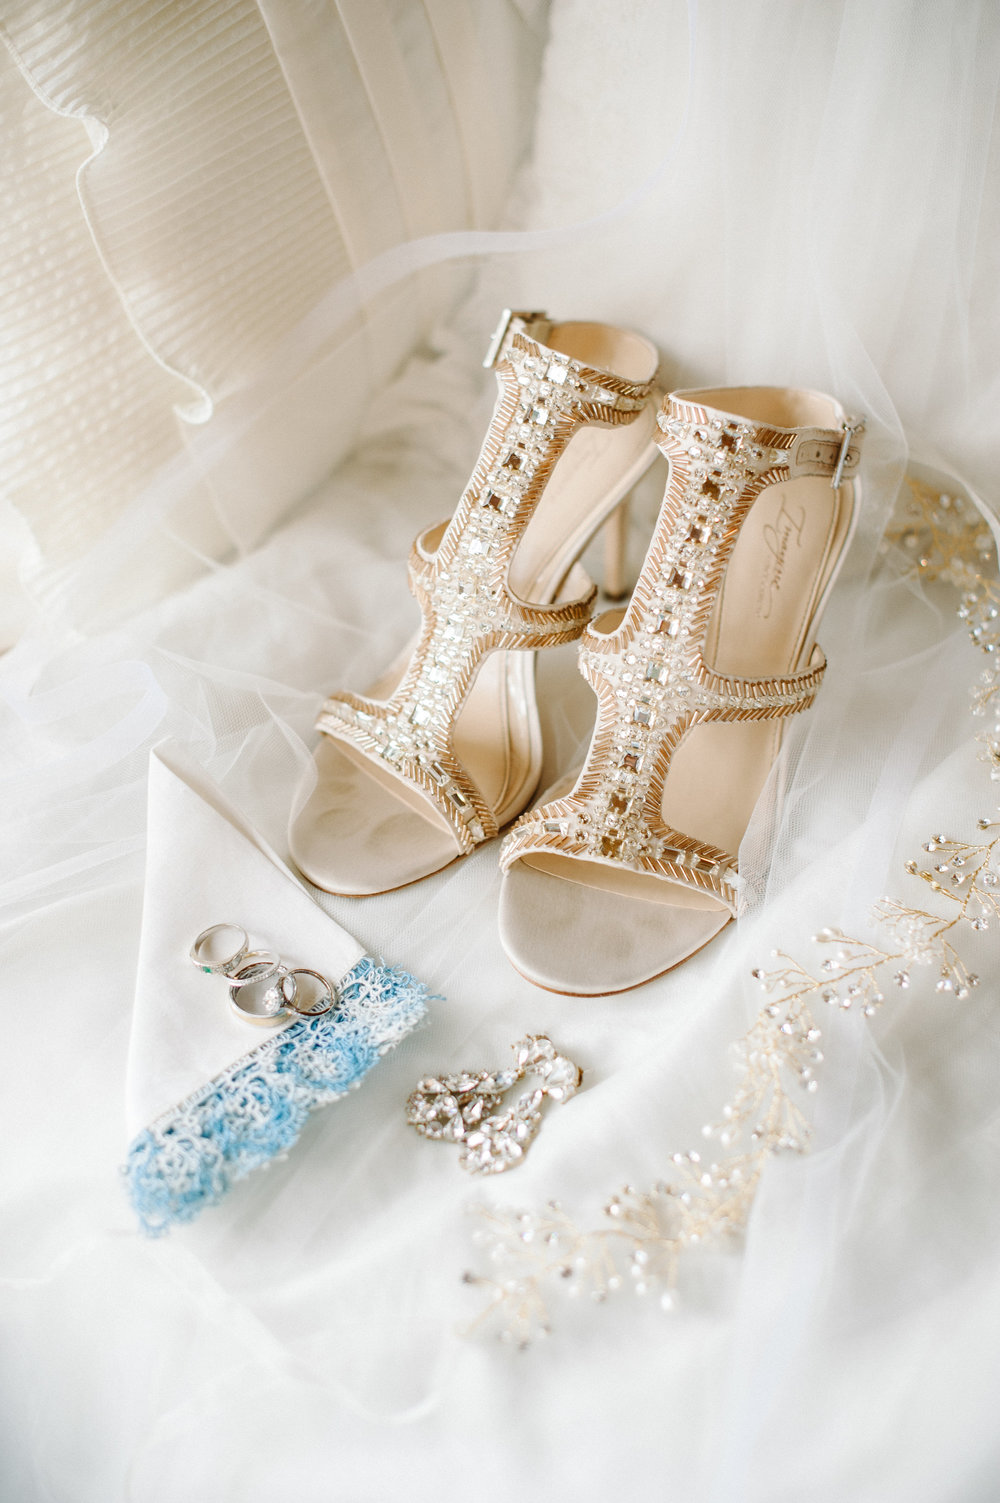 Cassie's wedding details, diamond earrings, gold heels & wedding rings